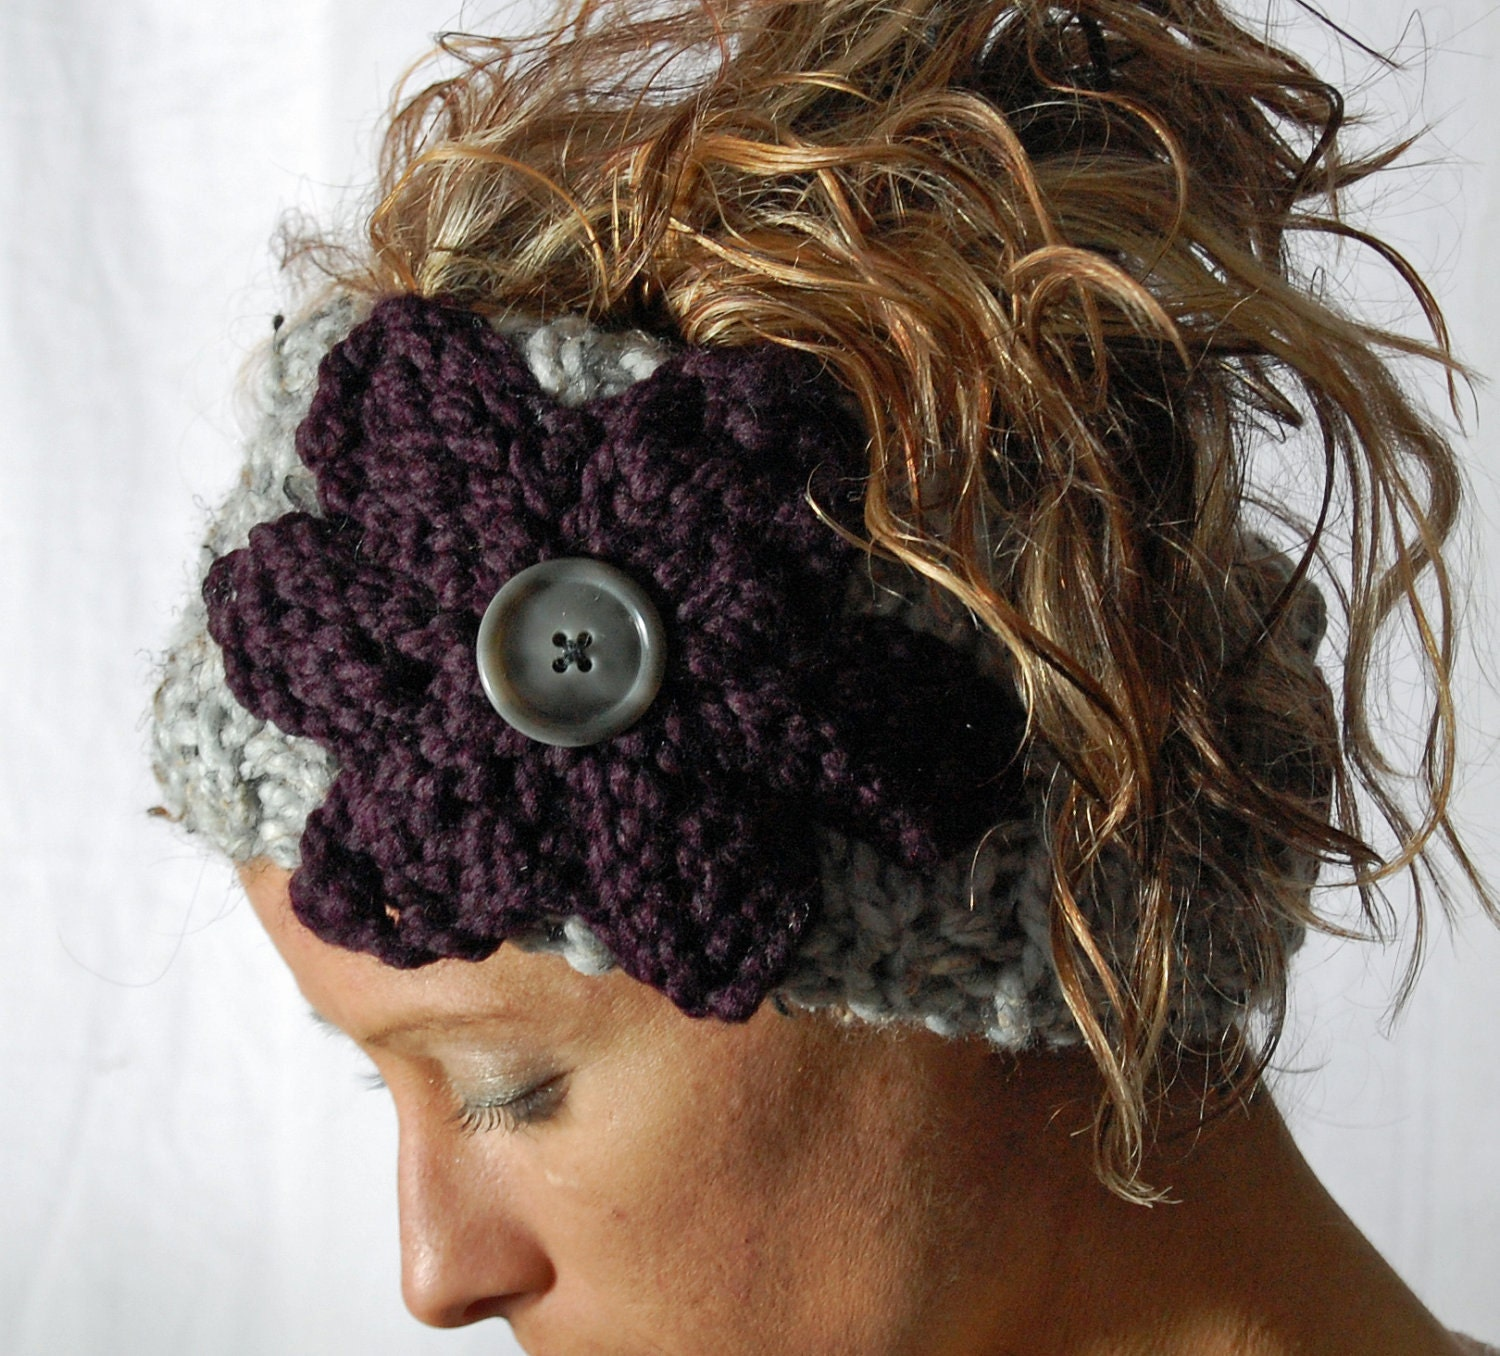 Knit Pattern Headband With Button Closure : KNIT headband ear warmer head wrap neck warmer knit